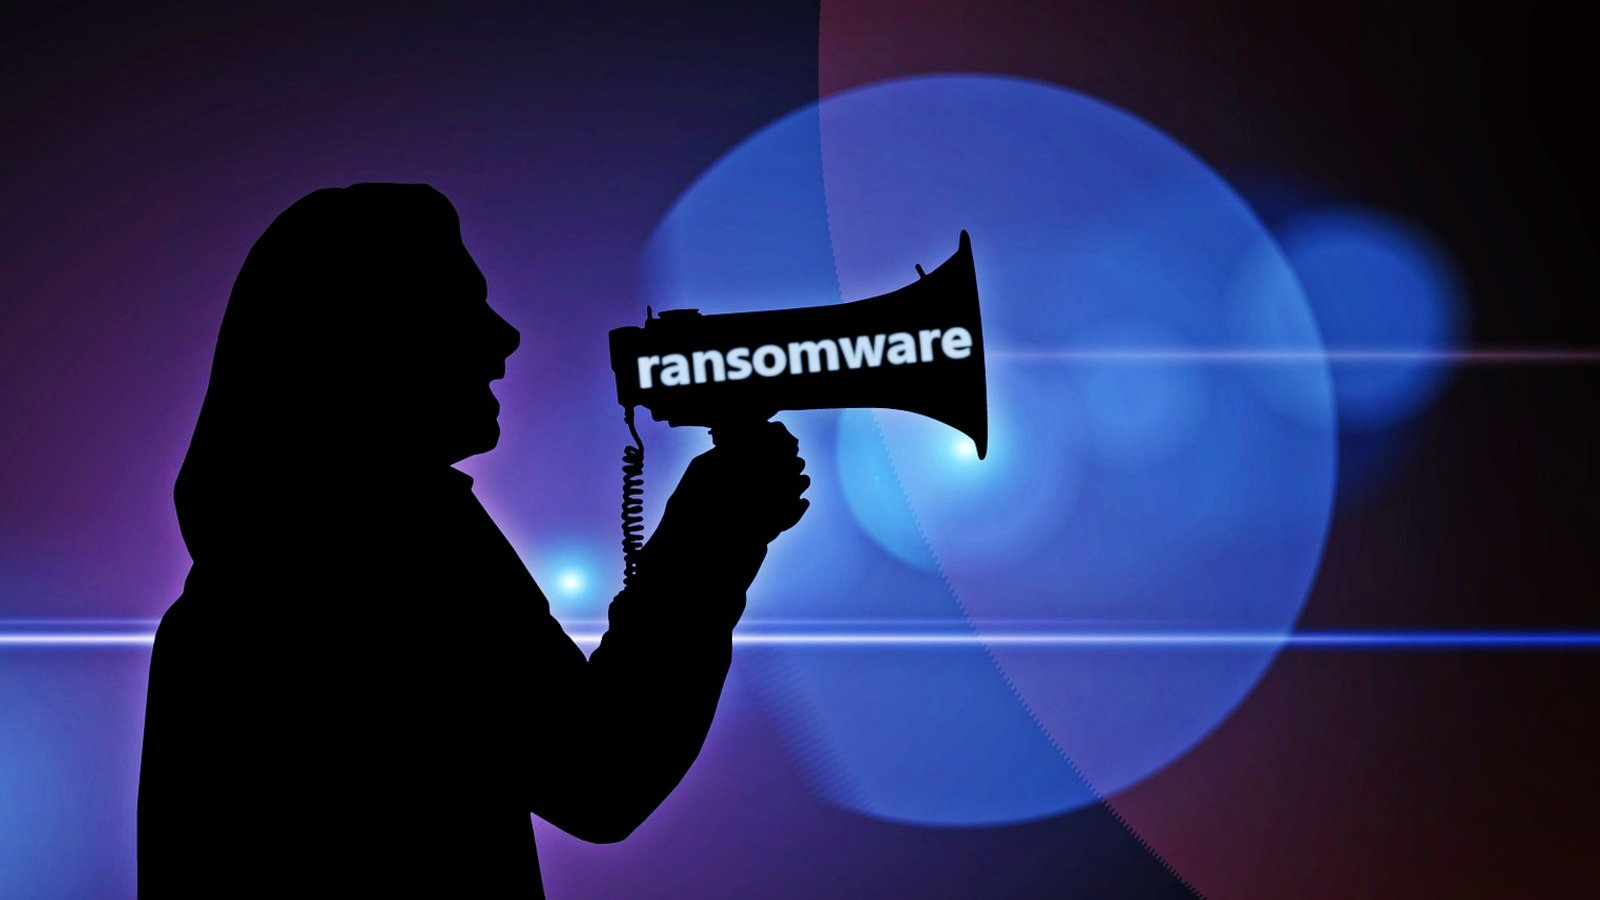 FBI, CISA: Ransomware attack risk increases on holidays, weekends